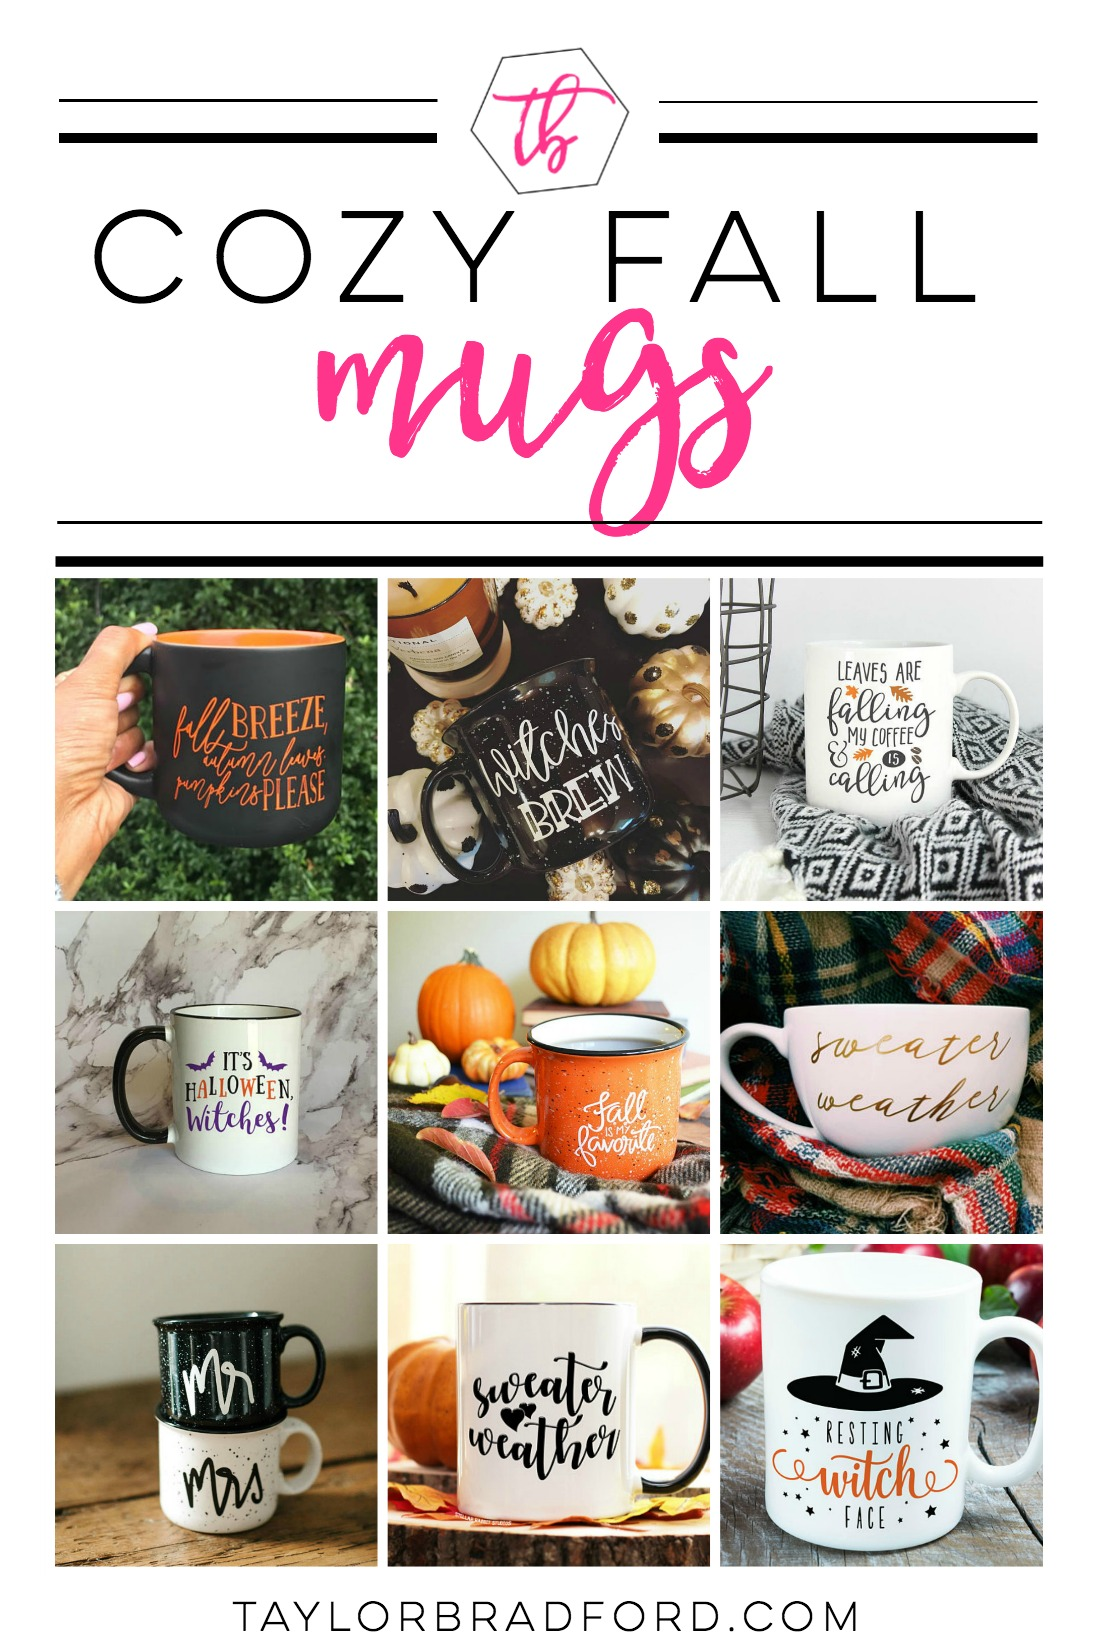 Love Fall as much as I do? Check out these Cozy Fall Mugs perfect for your favorite hot beverage!! #fallmugs #mugs